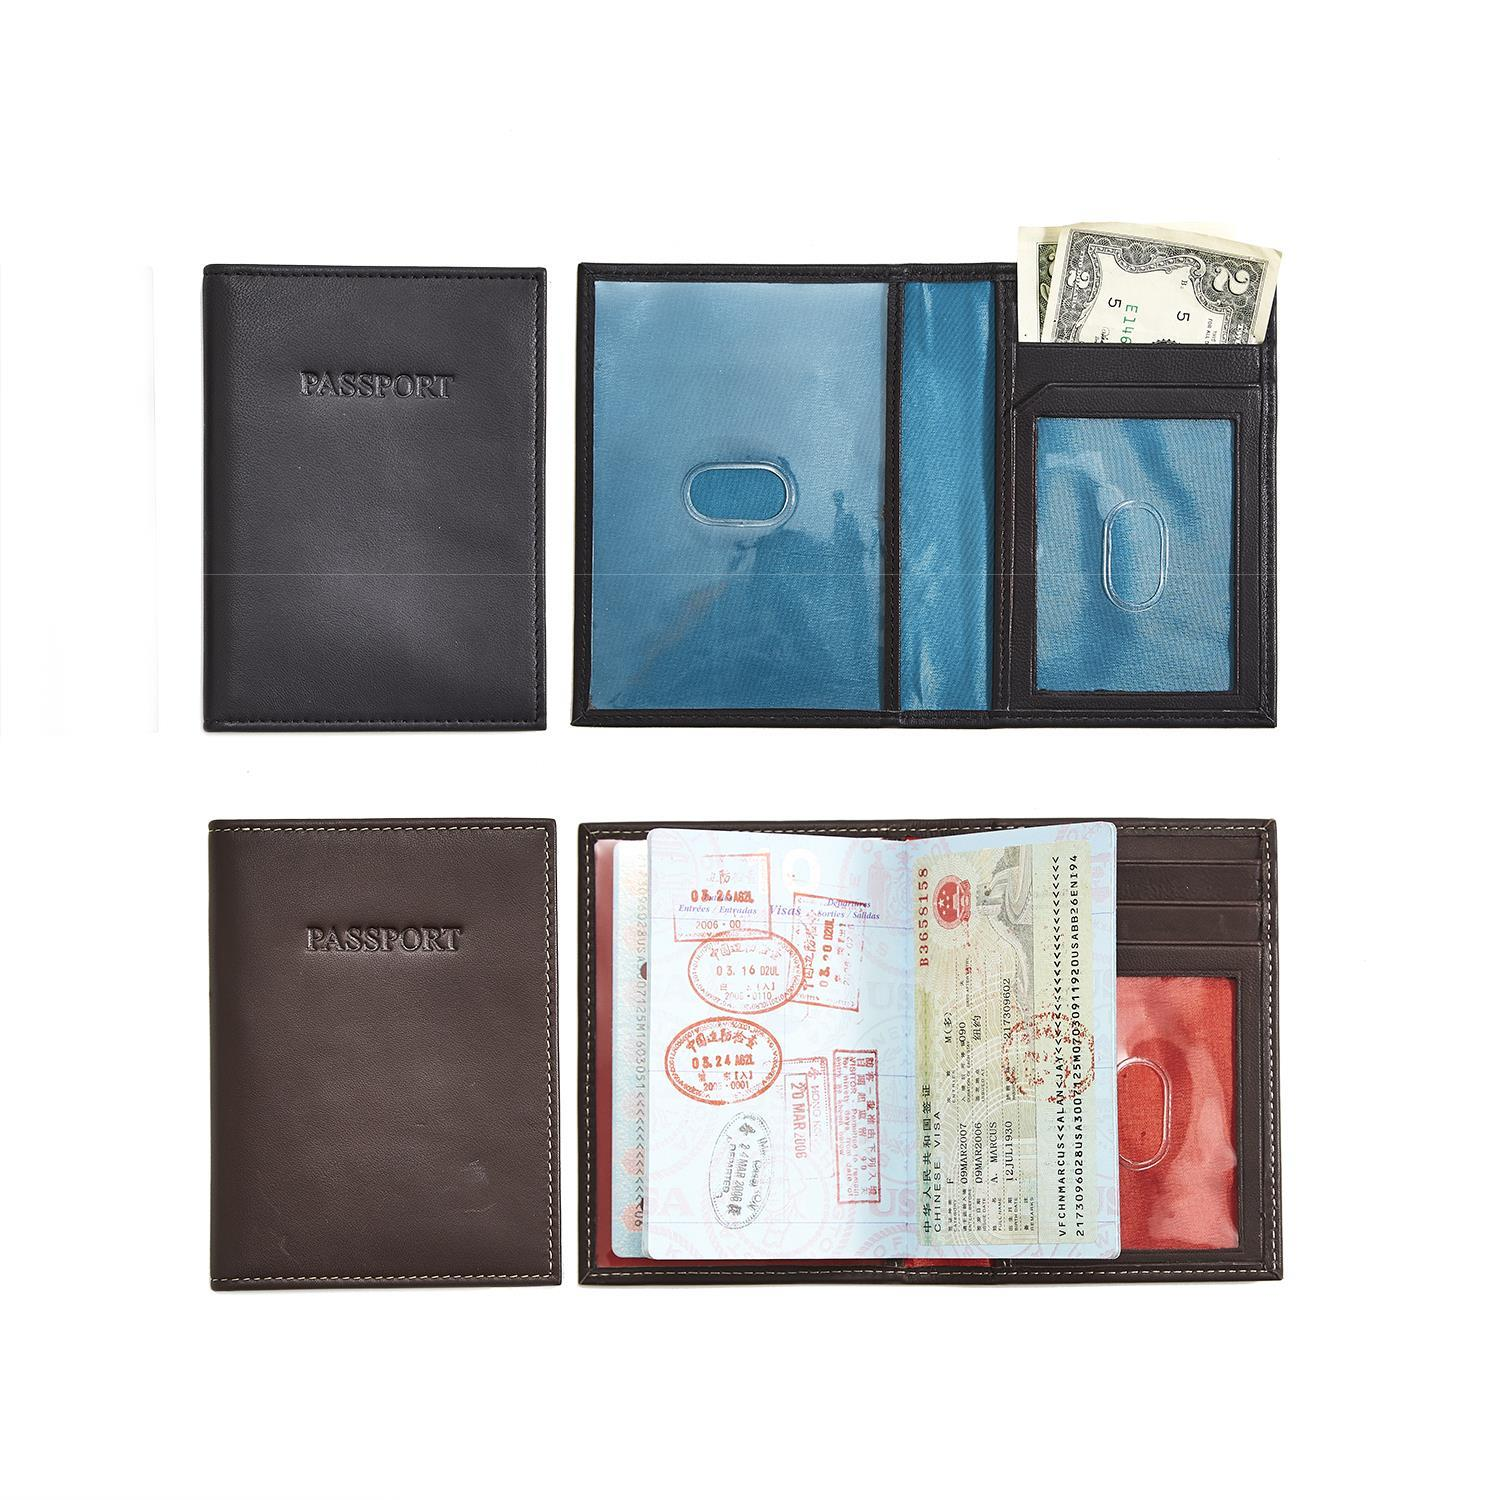 85193a3a9c86 Leather Passport Holder in Gift Box Asst 2 Colors